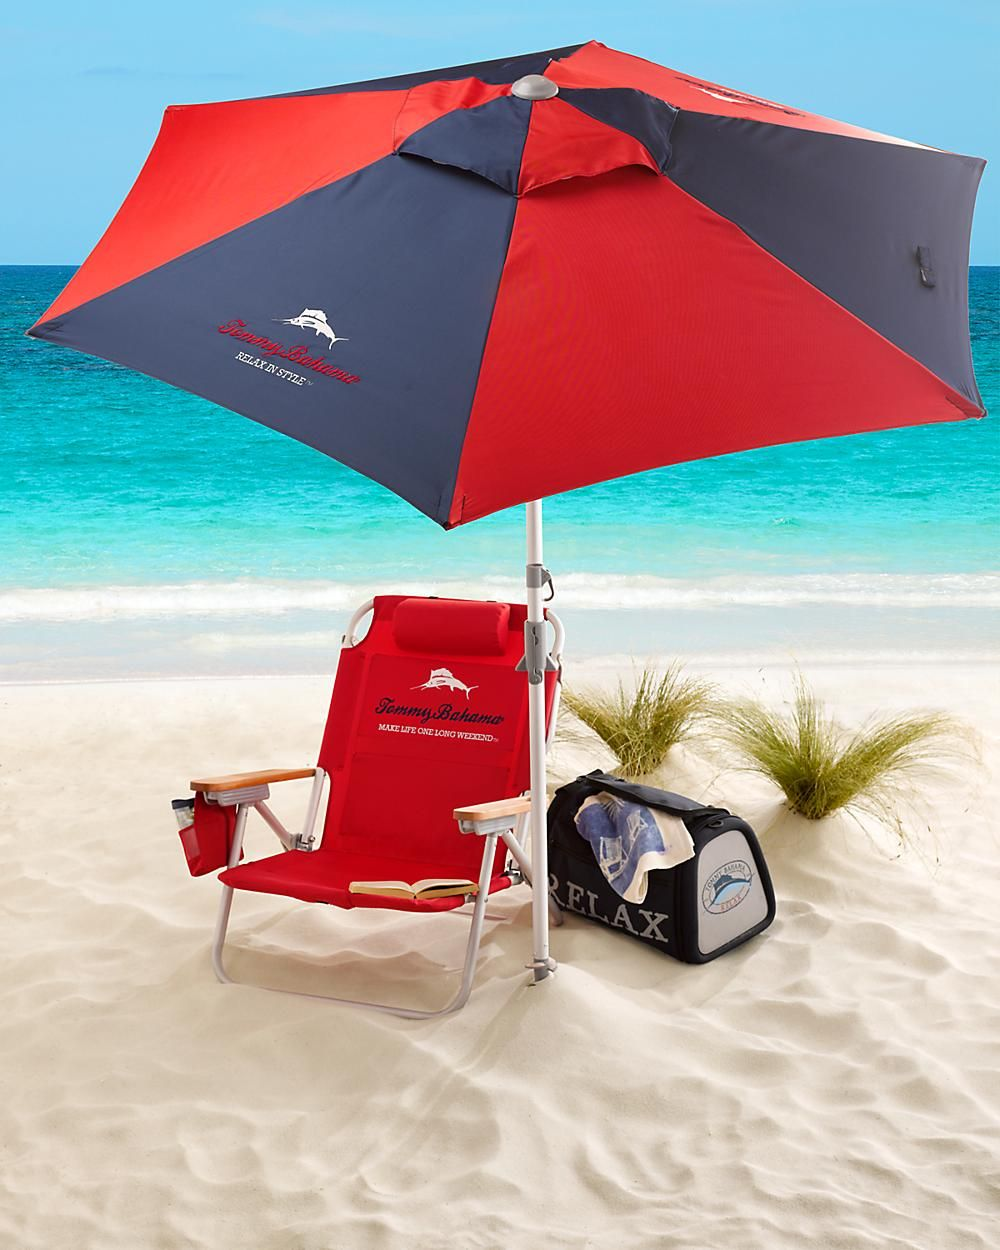 Tommy Bahama Bech Chair Maybe Umbrella Too Awesome Deal  # Muebles Nadir Remedios De Escalada